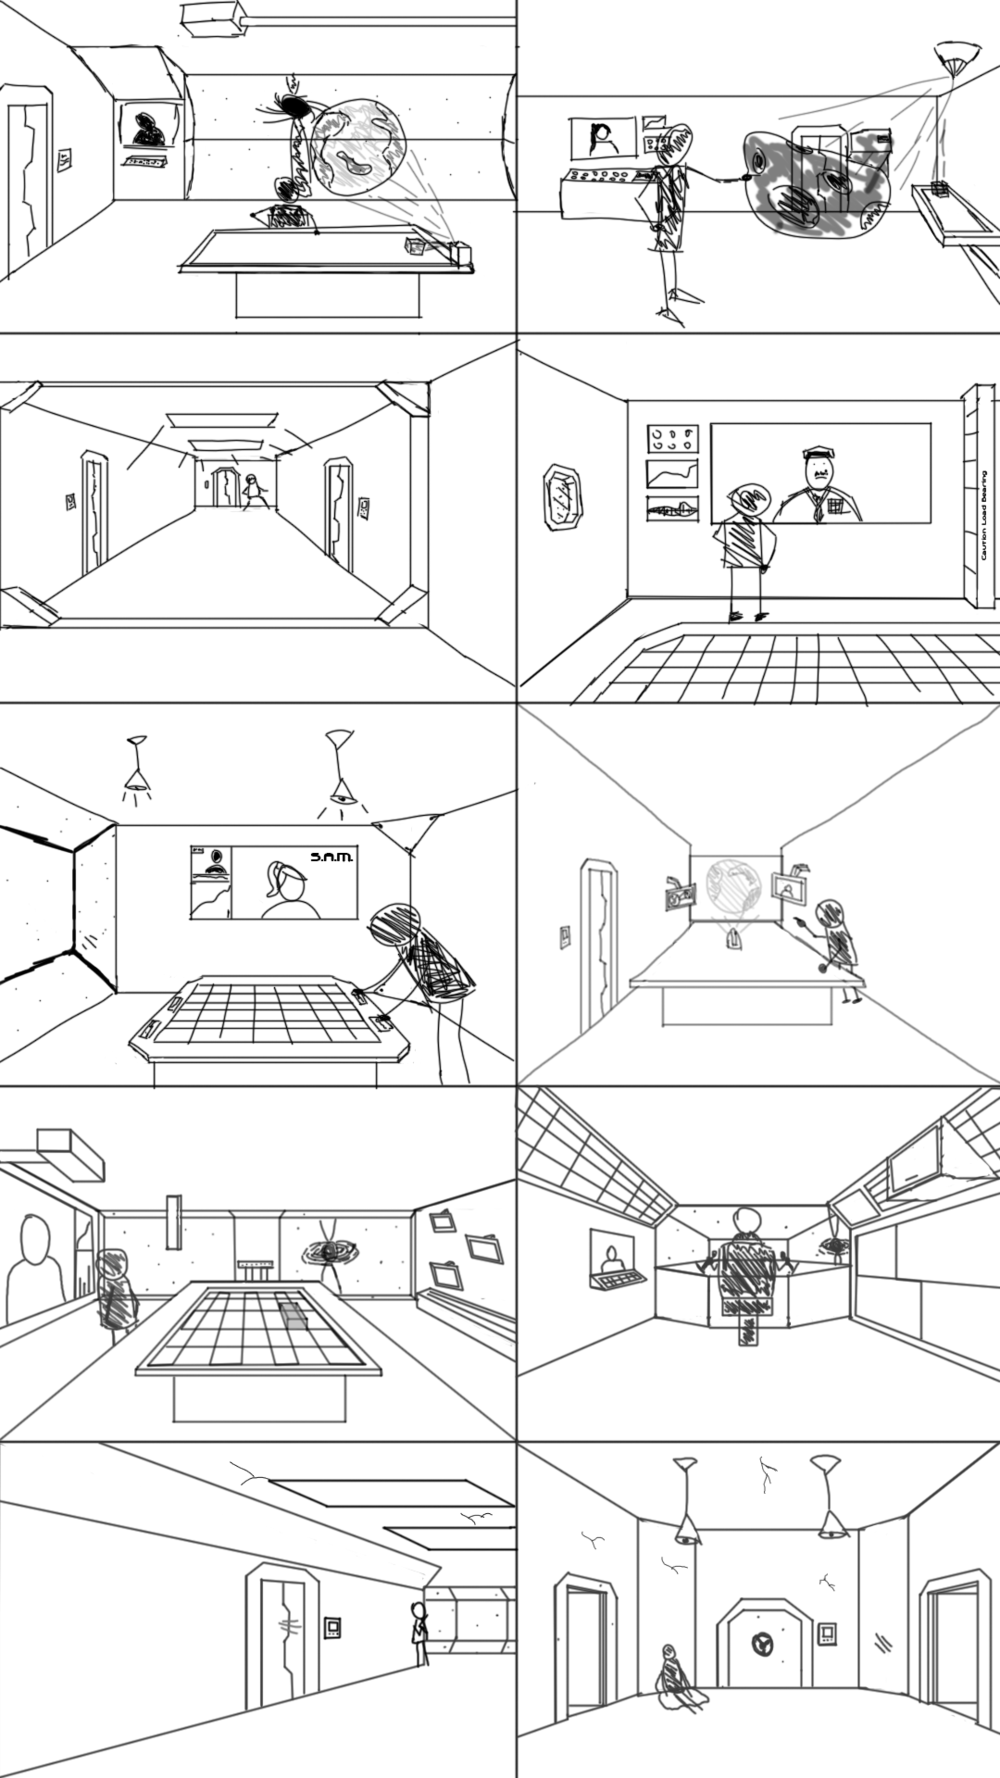 I wanted to do a variety of different versions of how the room or area would lay out. The briefing room has several key points that I tried to vary between all of the iterations of the area. A holographic table is one of the key aspects and so in most of the sketches it makes an appearance with a variety of different methods of projection. Sometimes its like a projector forming in mid air, sometimes it forms from the light of the table below it. Additionally I didn't want walls to be completely clear so I tried to add wedges, consoles, columns, and windows to make even the the walls interesting. At the same time in the windows I didn't want it to be dead space or a generic star field so I instead decided to try to add an interesting black hole as something to grab attention. I also wanted to think about other other locations that could potentially be the focus of this piece and so I tried a corridor, an airlock and the cockpit of the ship.